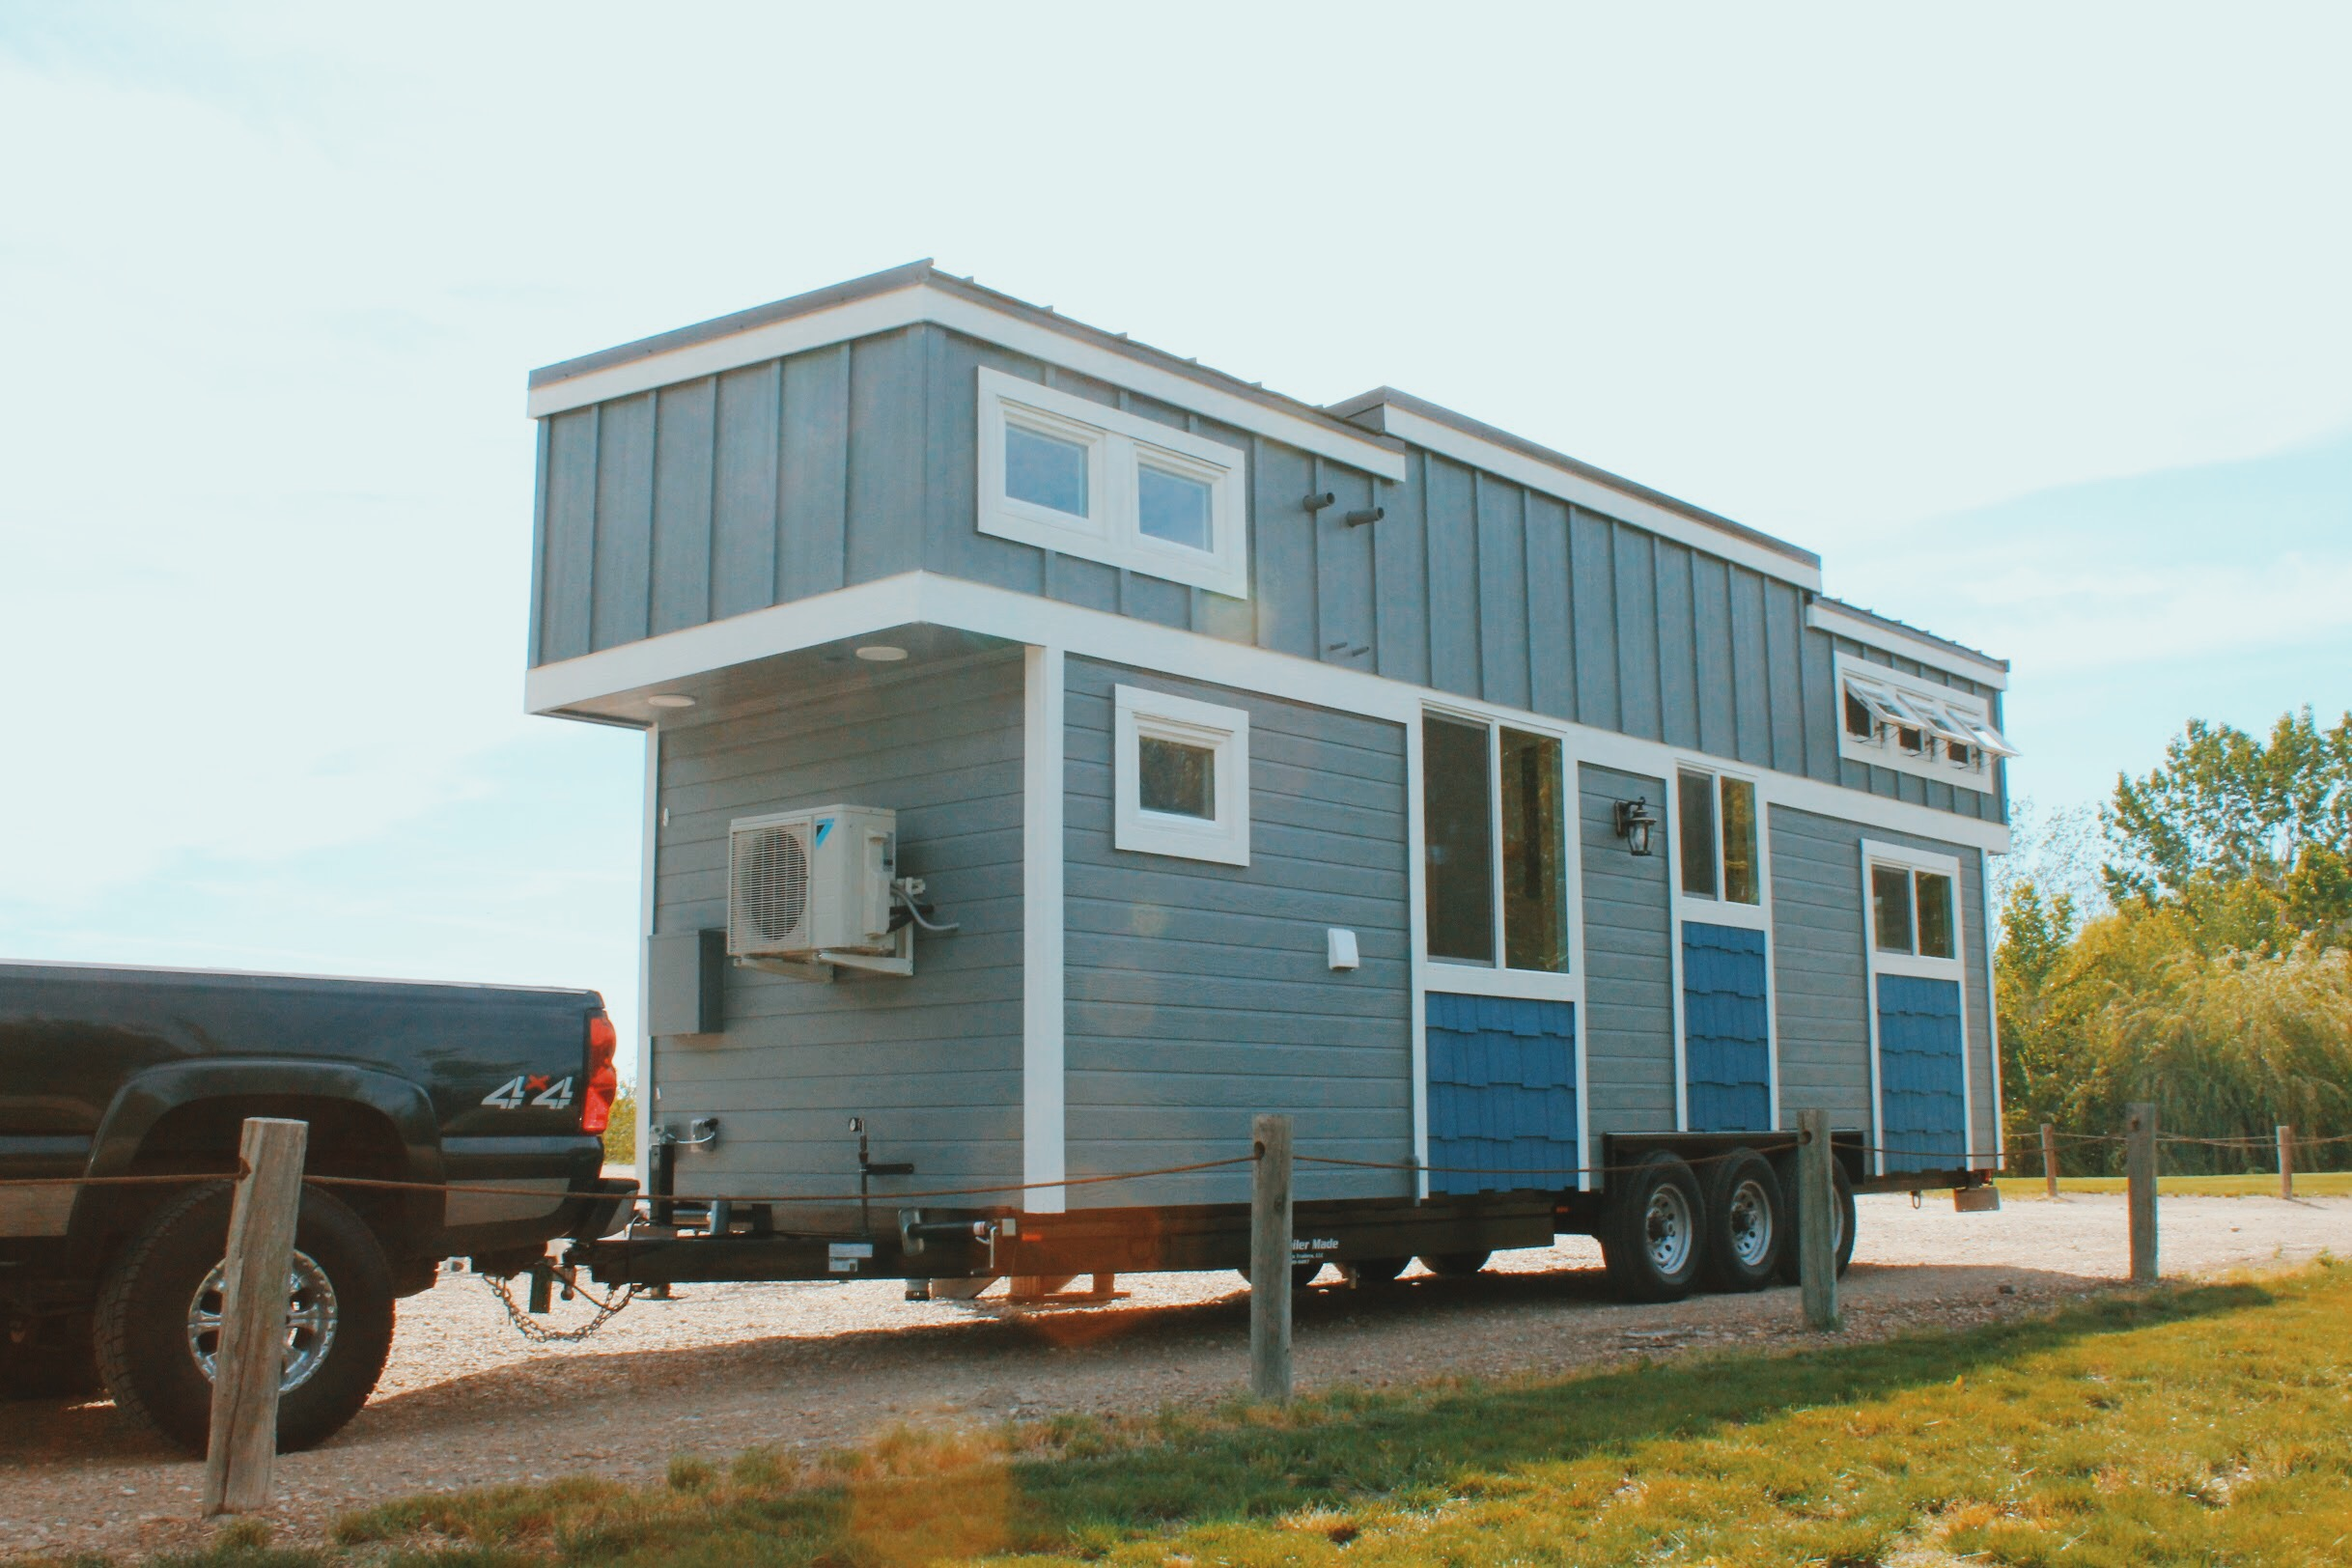 Project Tiny House 2018 - Final - 2.jpg